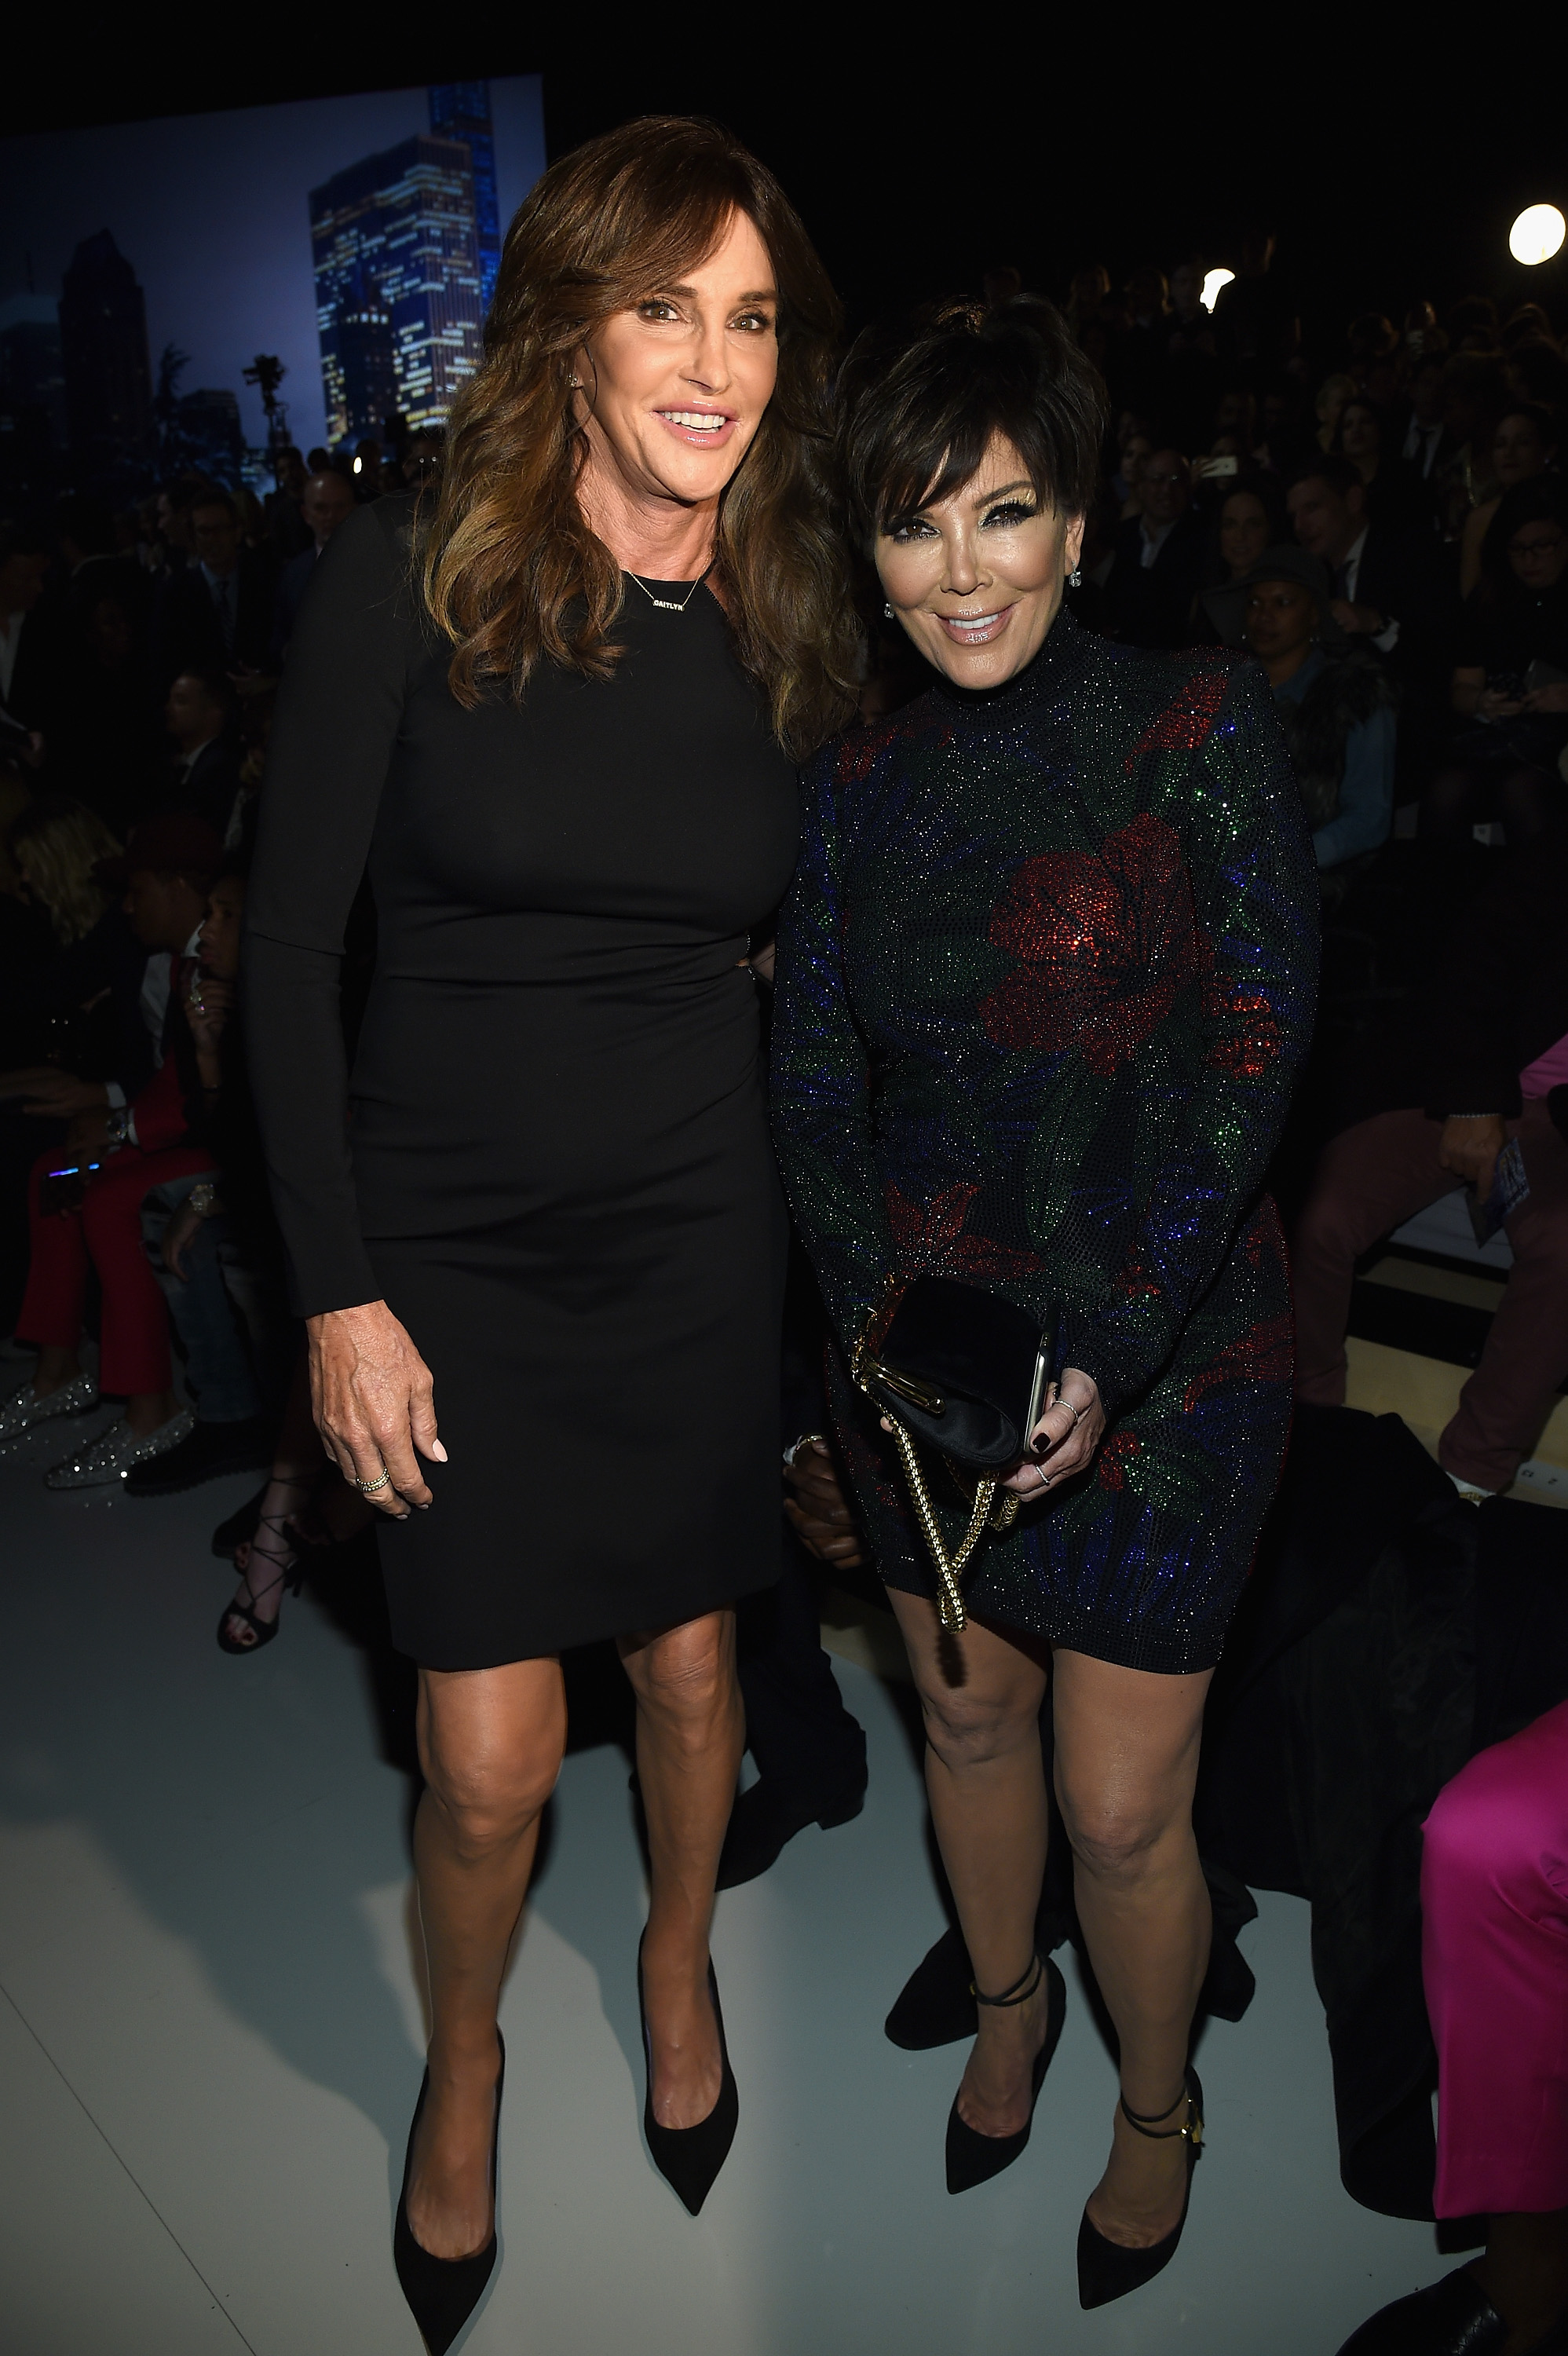 Caitlyn Jenner and Kris Jenner attend the 2015 Victoria's Secret Fashion Show at Lexington Avenue Armory on Nov. 10, 2015 in New York City.